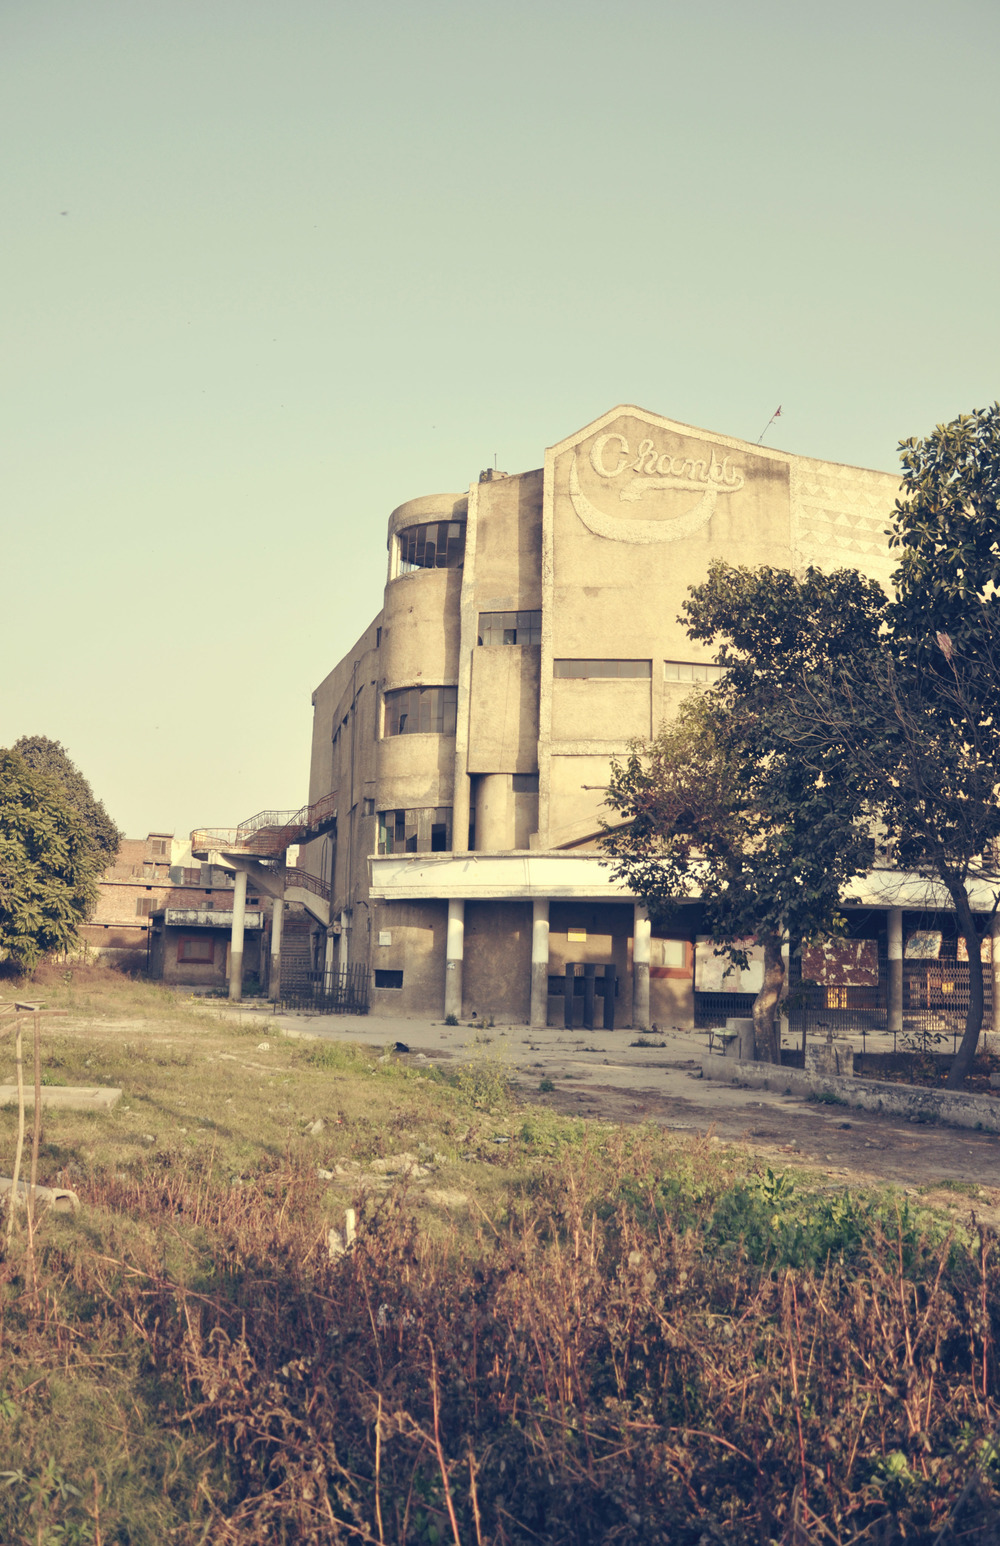 Chand cinema, Ludhiana-Jalandhar Highway